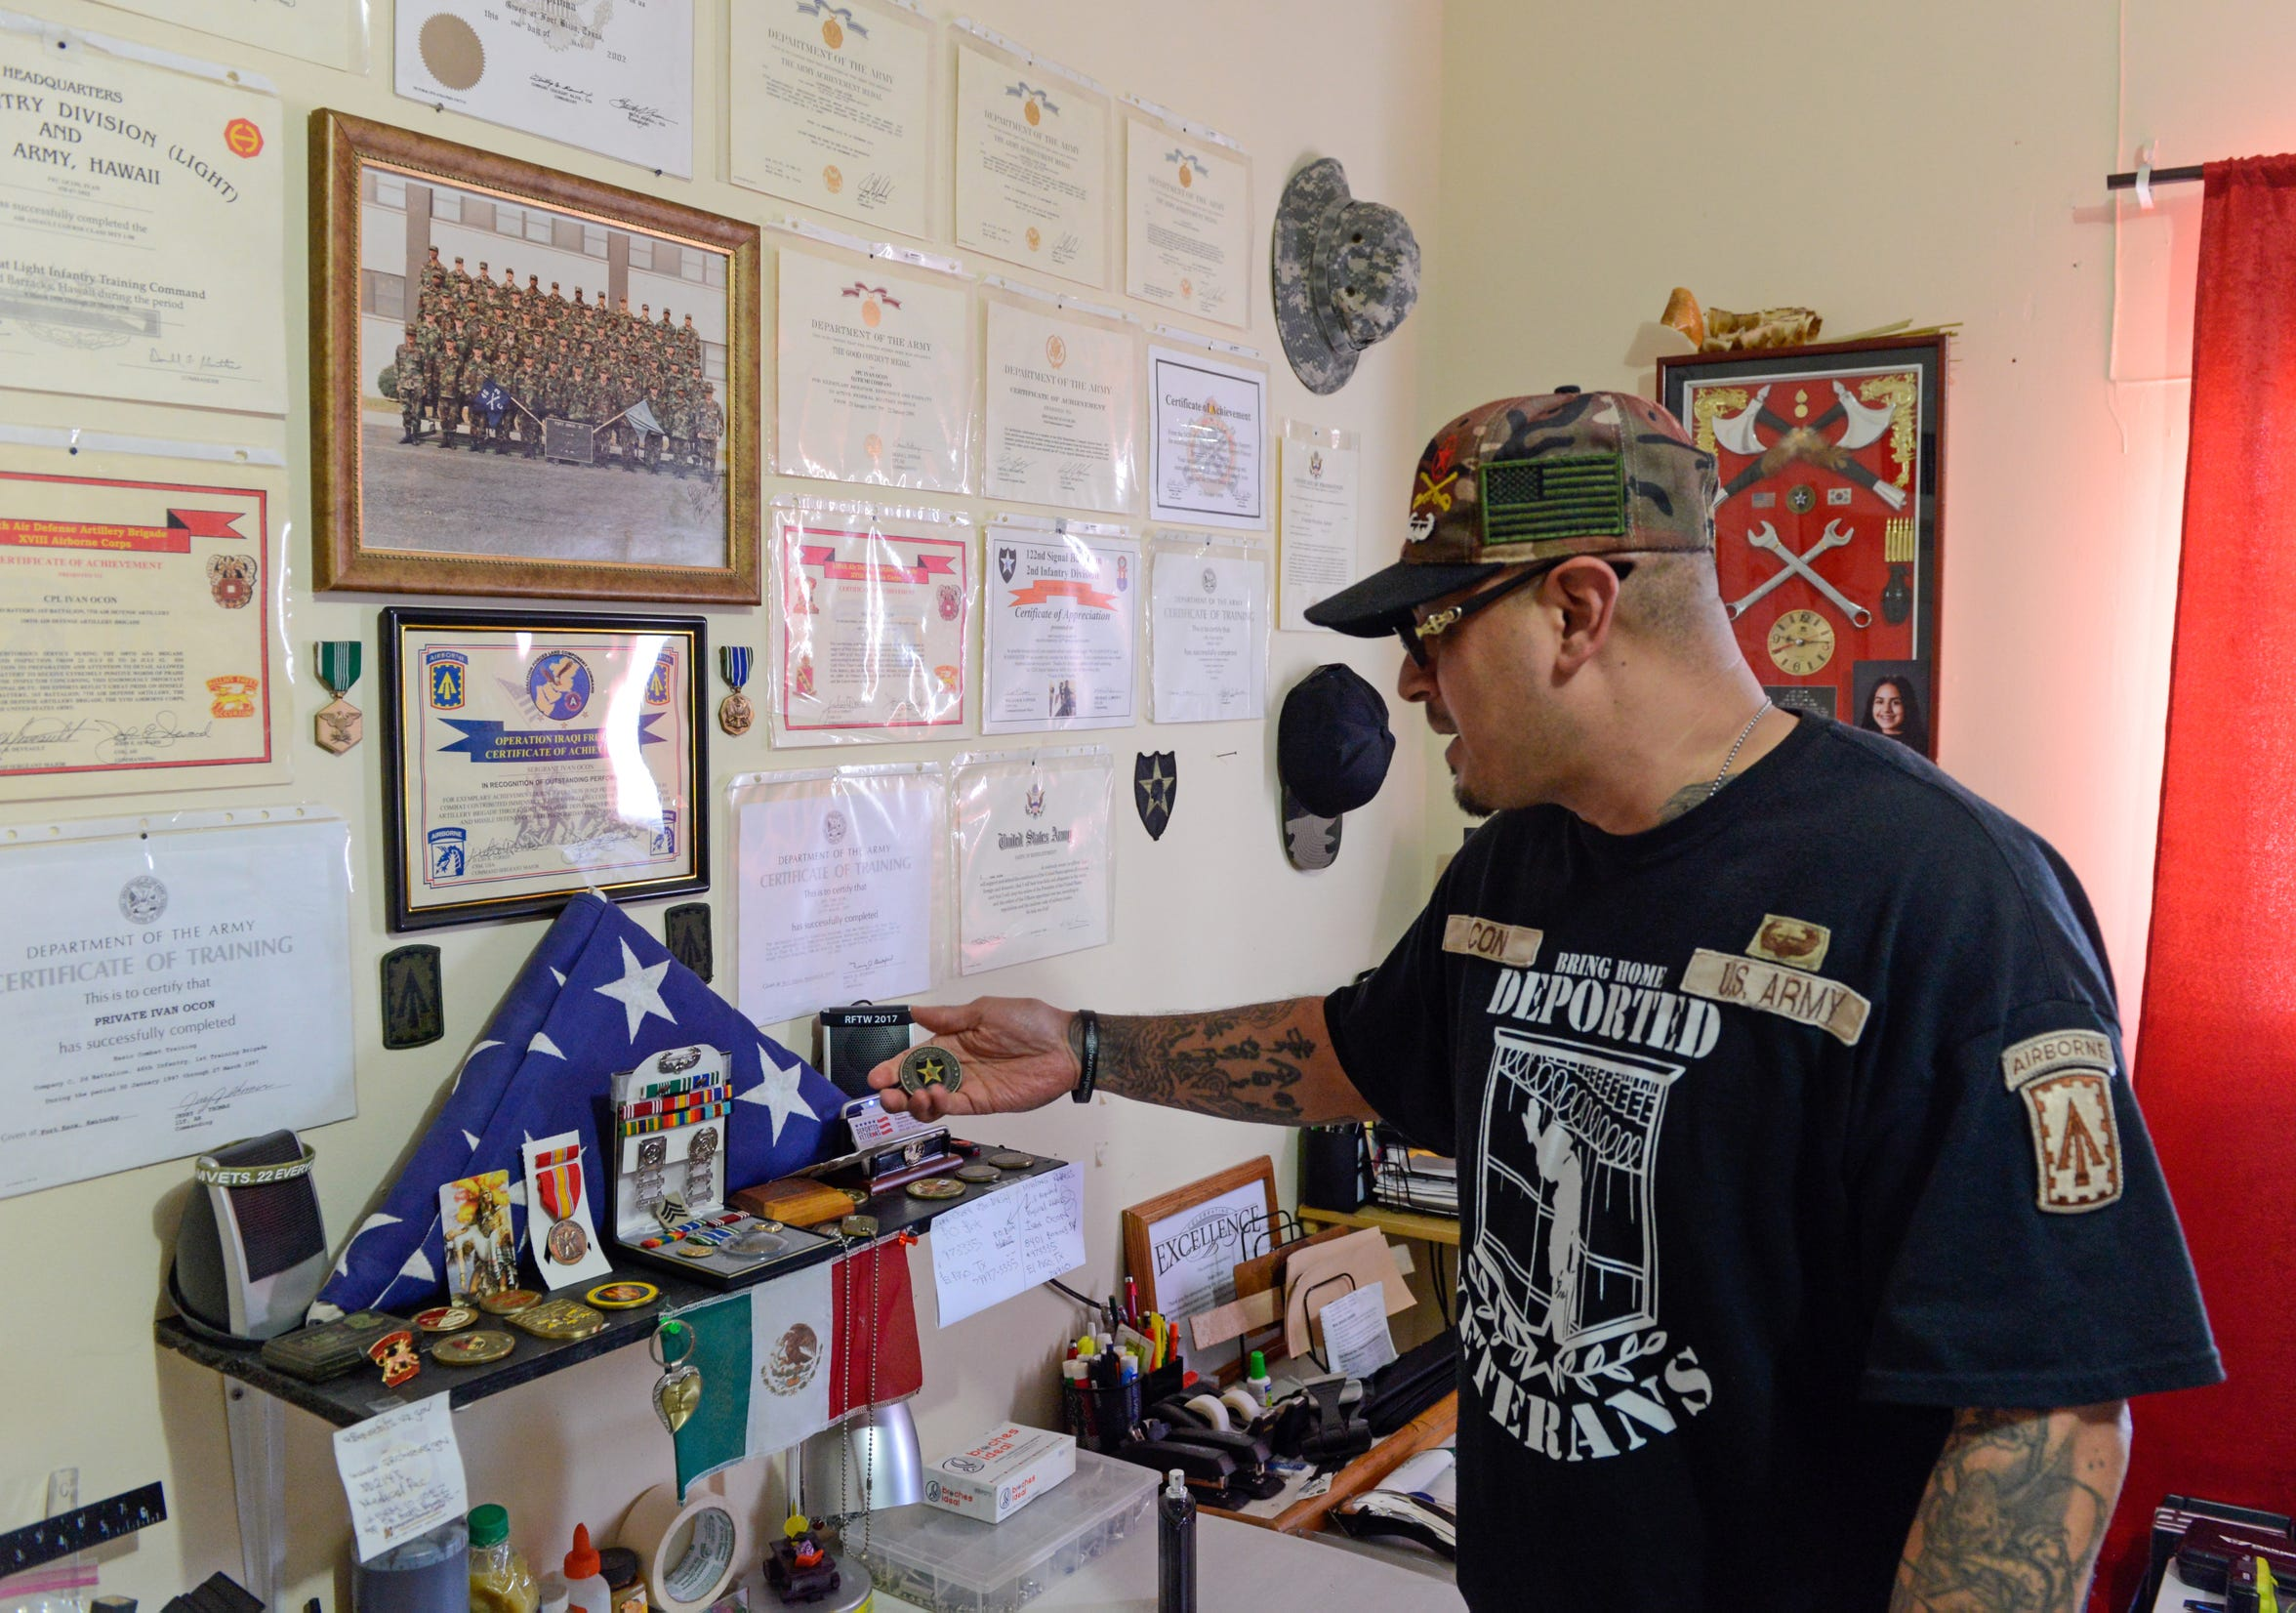 Ivan Ocon shows off some of the honors he received during his seven years in the U.S. Army.